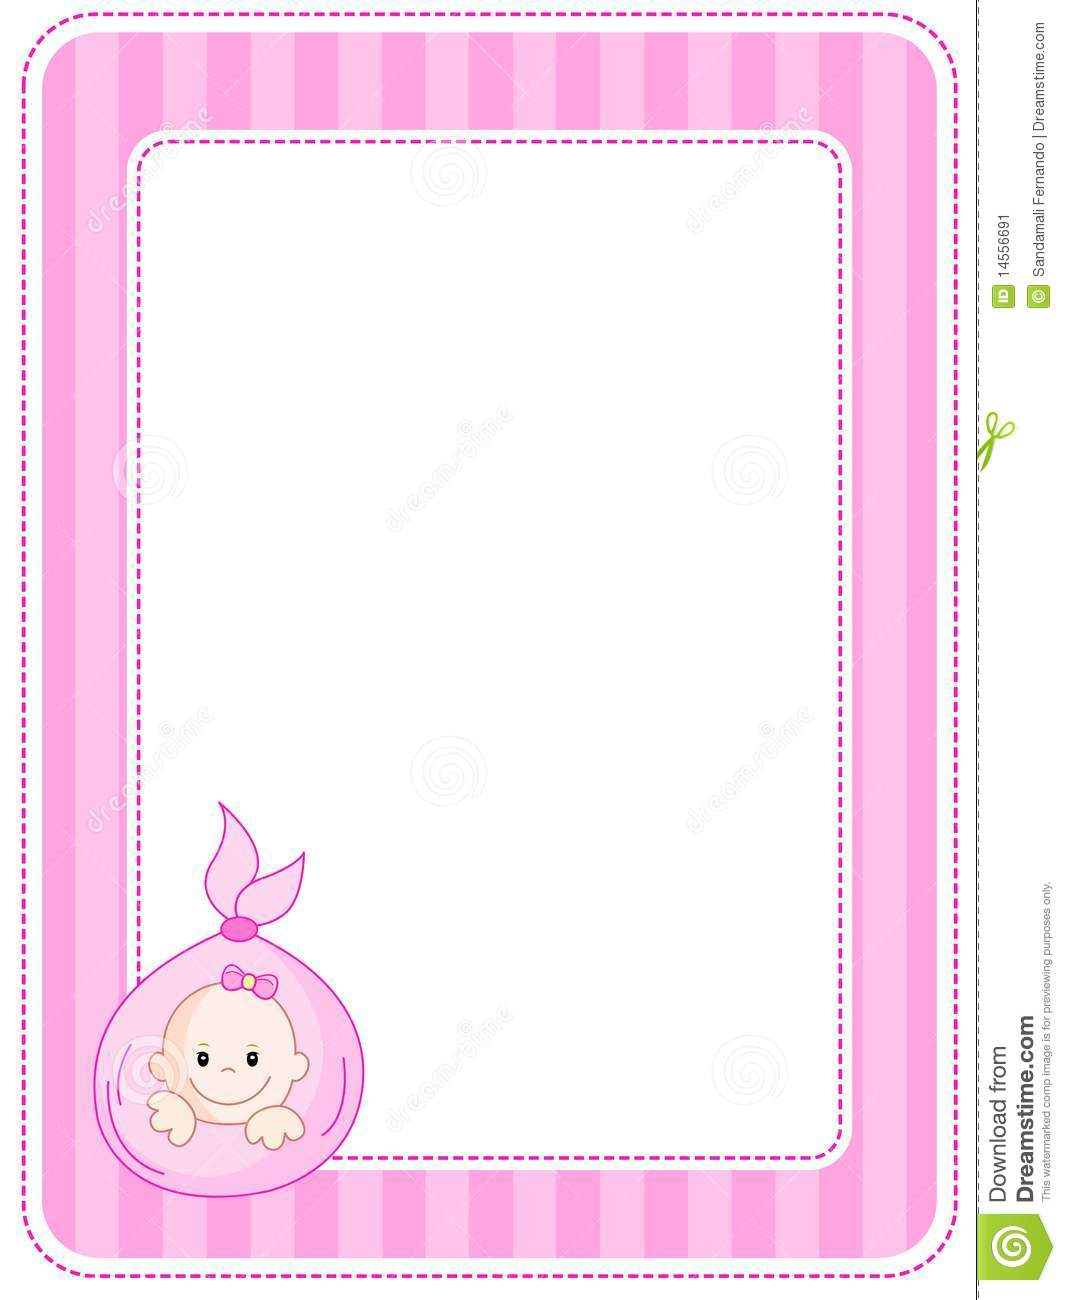 Cute baby storybook frame clipart image transparent library Cute baby storybook frame clipart - ClipartFest image transparent library